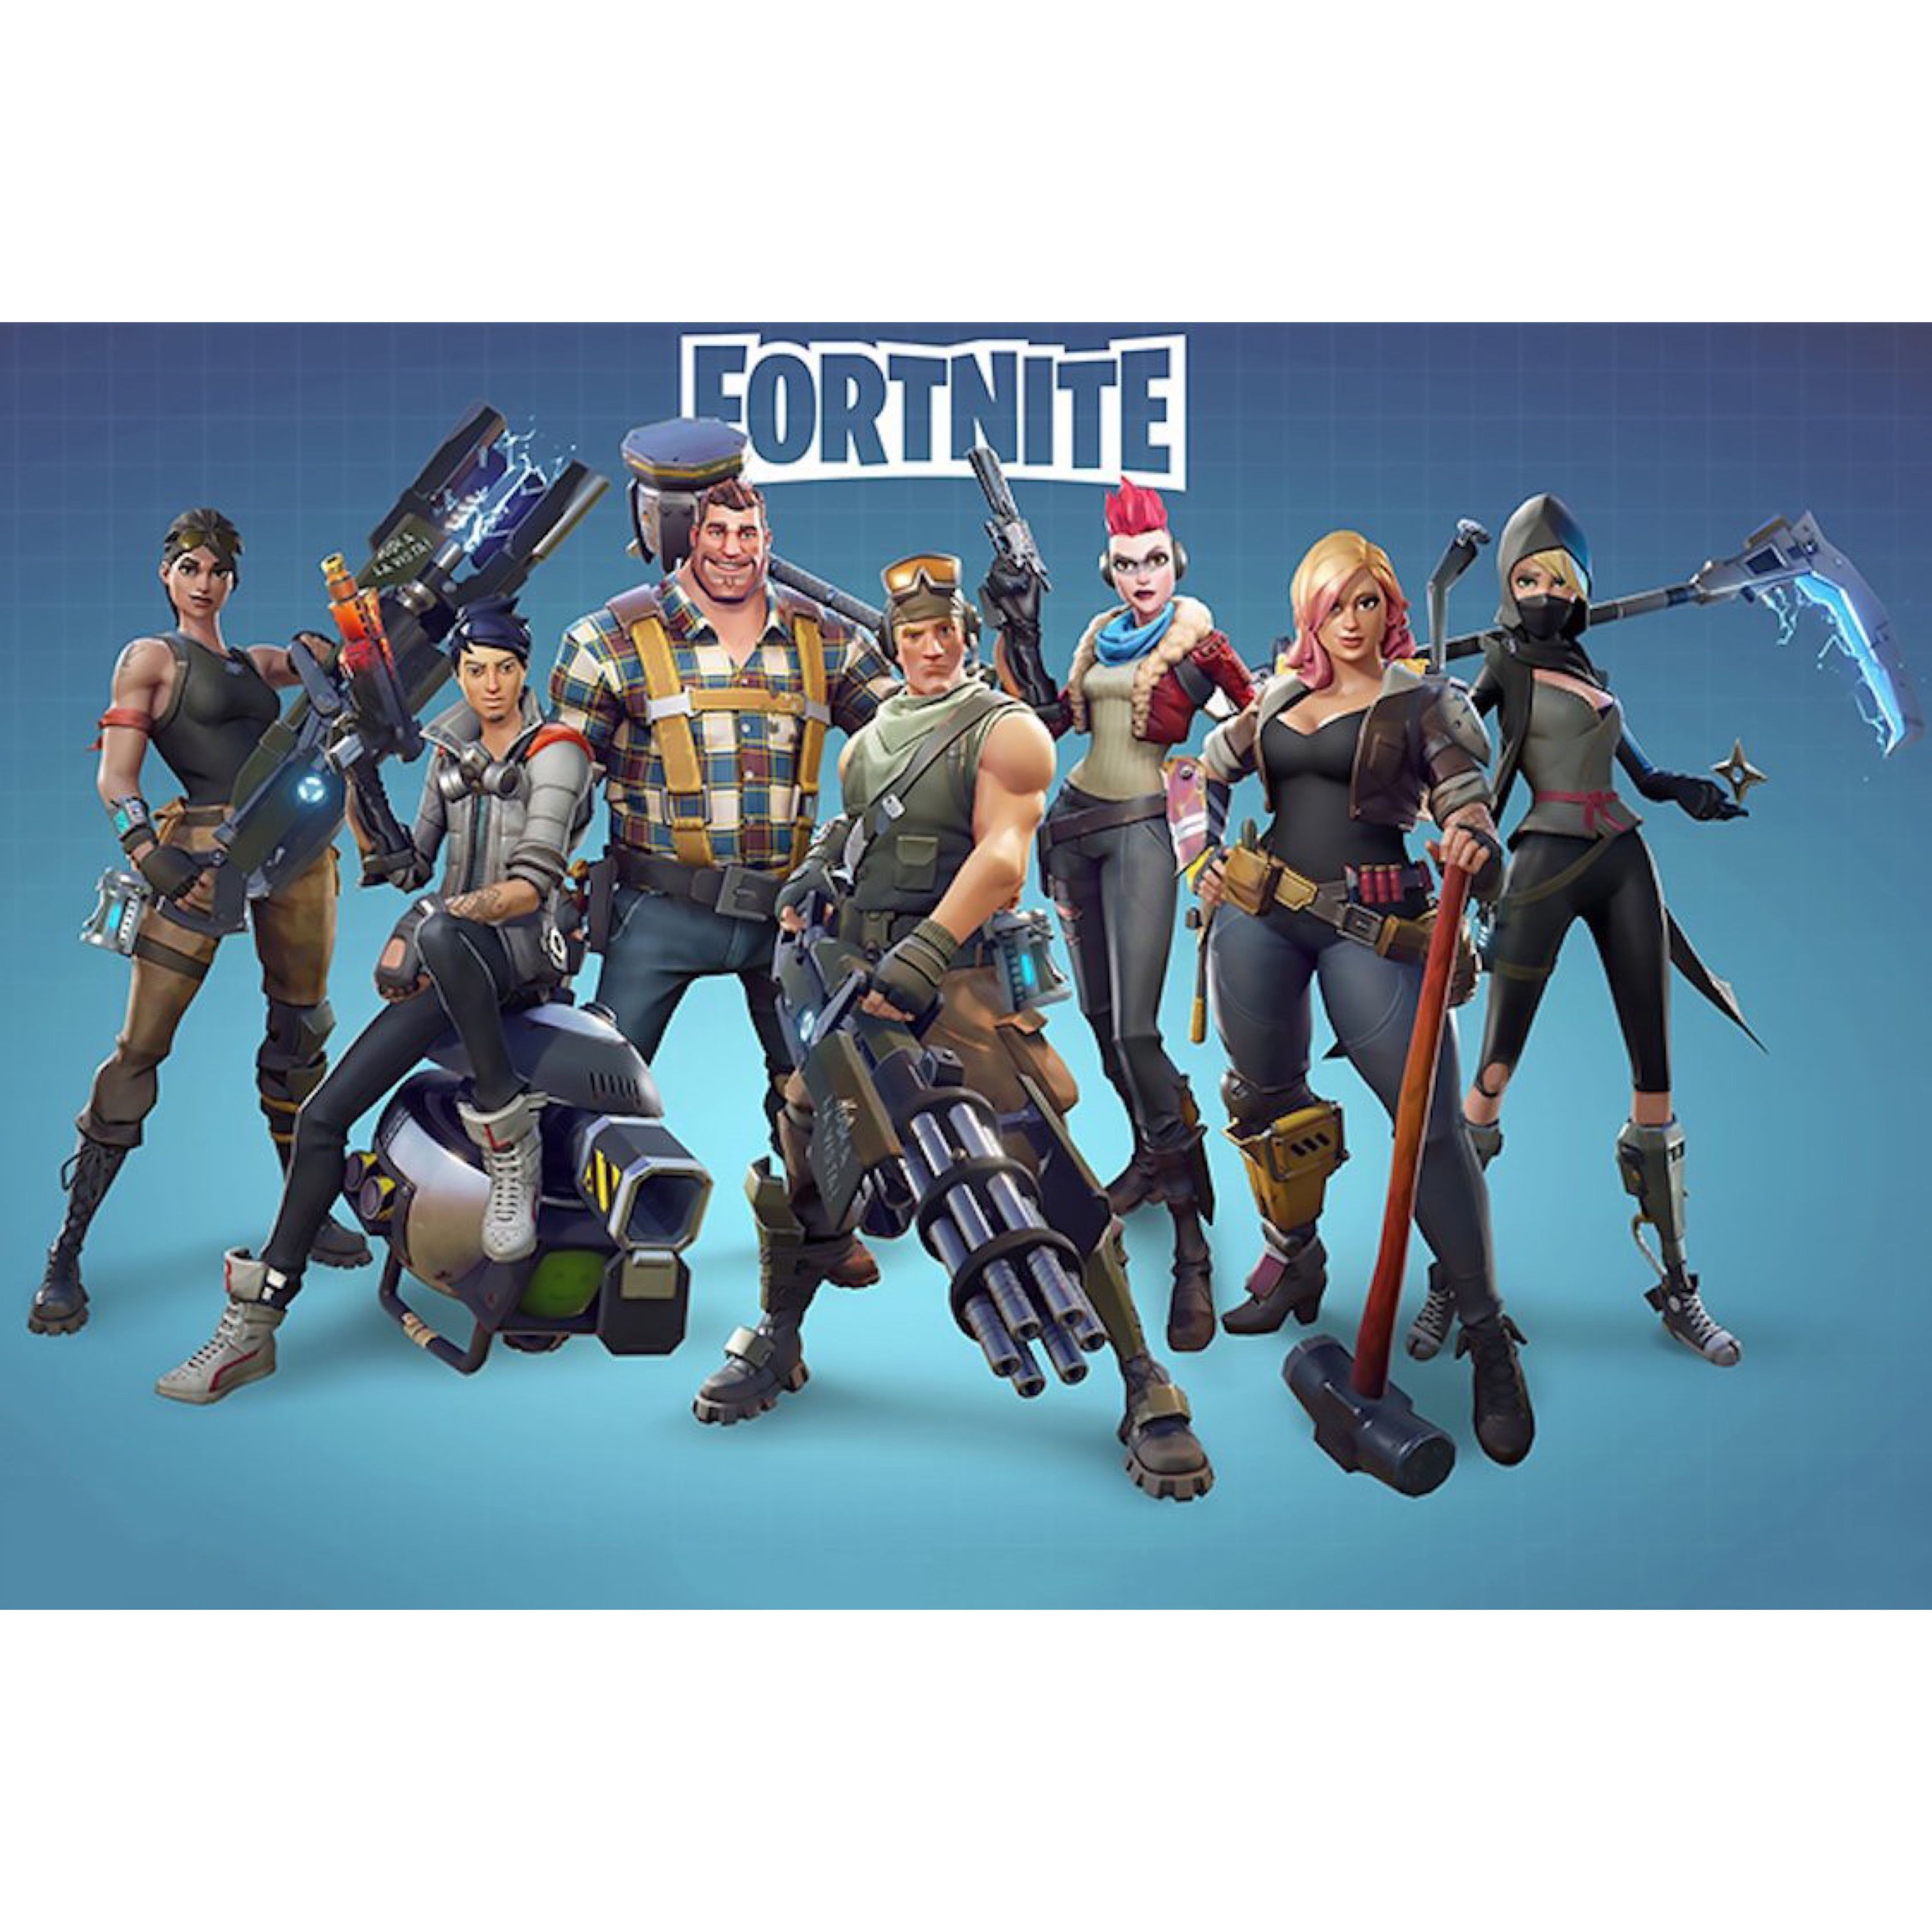 This Is A Fortnite Characters Video Game Poster Reproduction It Measures 24 X 36 In Size And Ships Rolled Battle Royale Game Gaming Wall Art Poster Wall Art